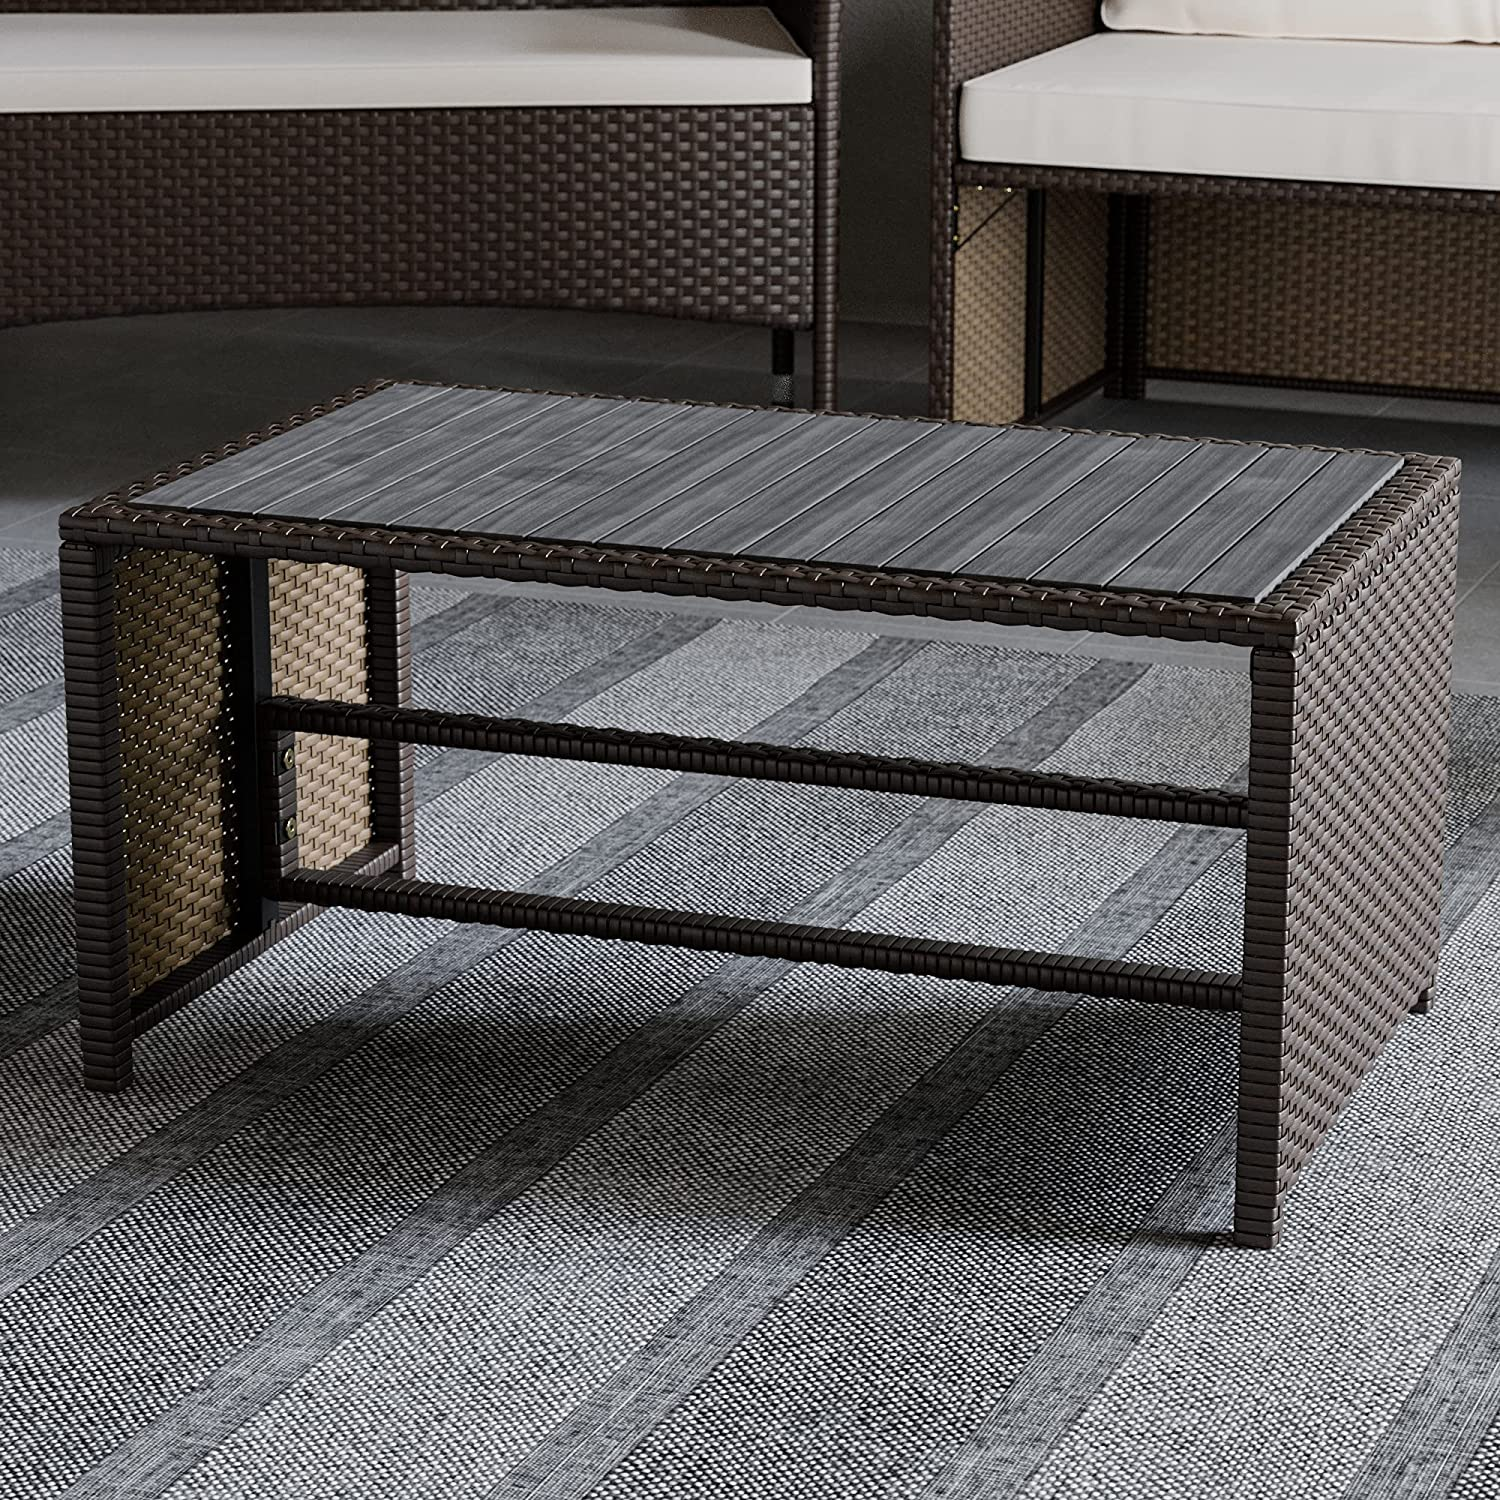 Edenbrook Bayview RattanPatioFurniture - Mix and Match Outdoor Furniture, Table Only, Brown Rattan/Grey Wood